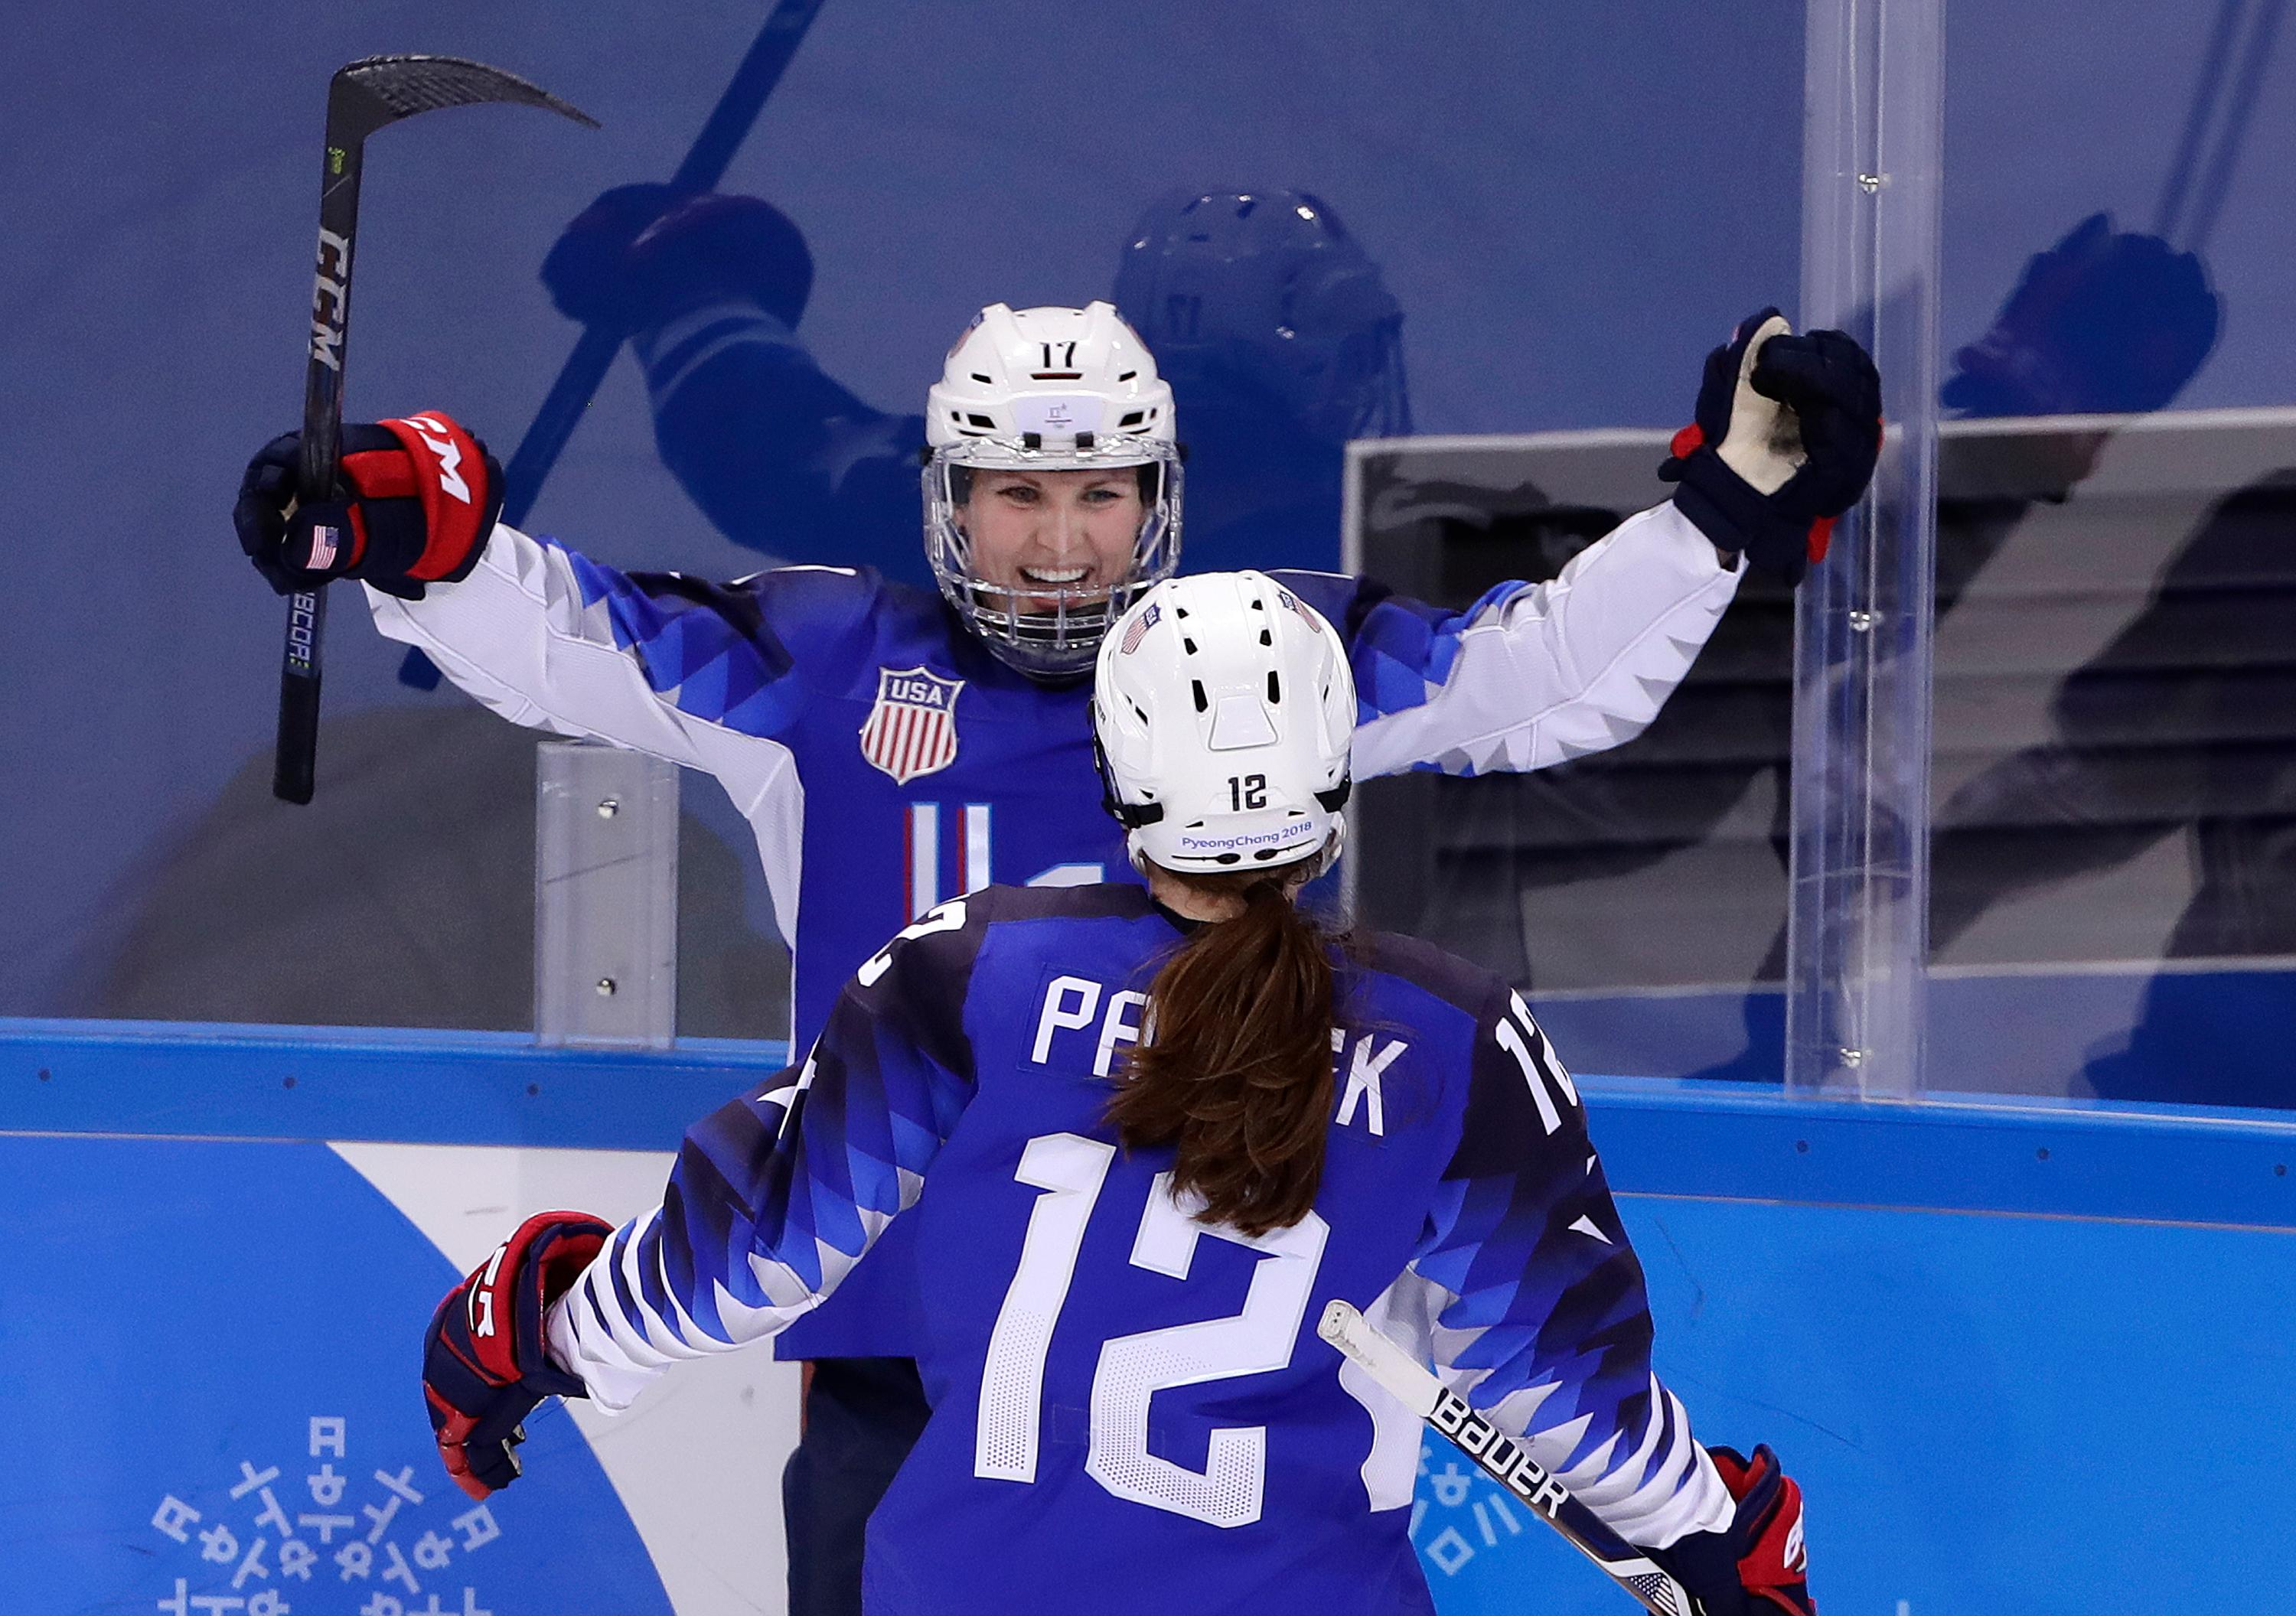 Jocelyne Lamoureux-Davidson (17), of the United States, celebrates her second goal against the team from Russia with Kelly Pannek (12) during the second period of the preliminary round of the women's hockey game at the 2018 Winter Olympics in Gangneung, South Korea, Tuesday, Feb. 13, 2018. (AP Photo/Frank Franklin II)